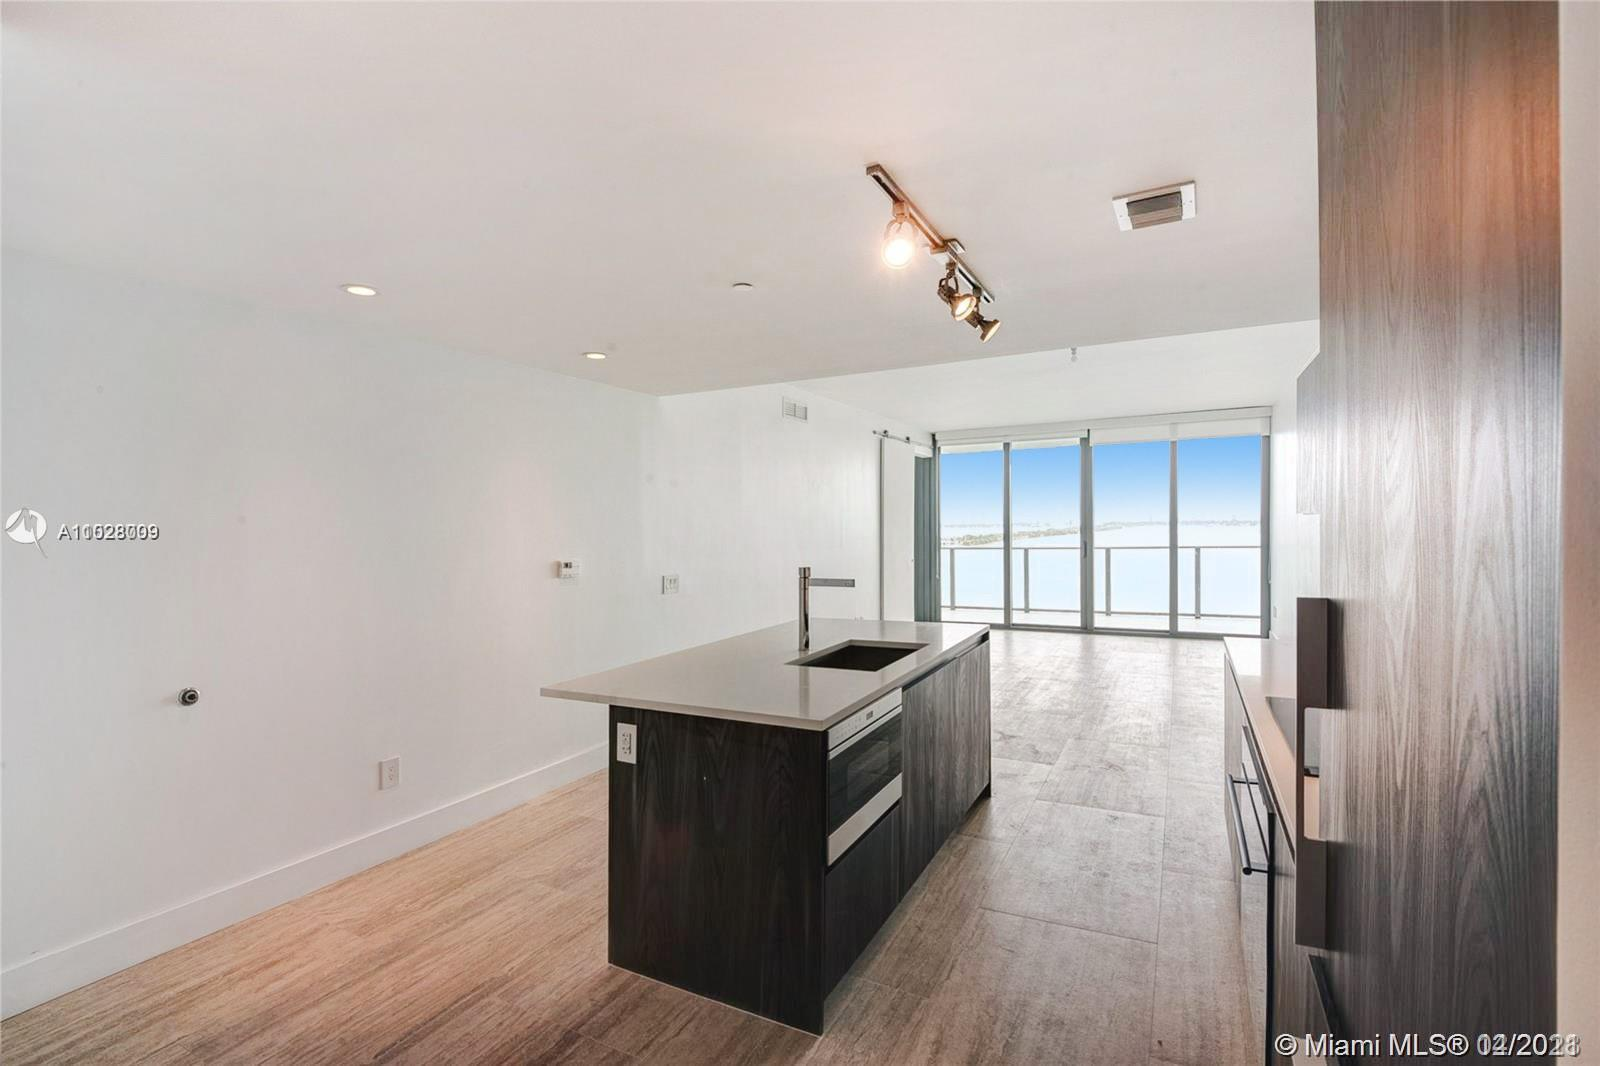 For Sale ! One Paraiso Unit 1402. Beautifully finished 1 bedroom + 1.5 baths + Den close to 1,000 sq